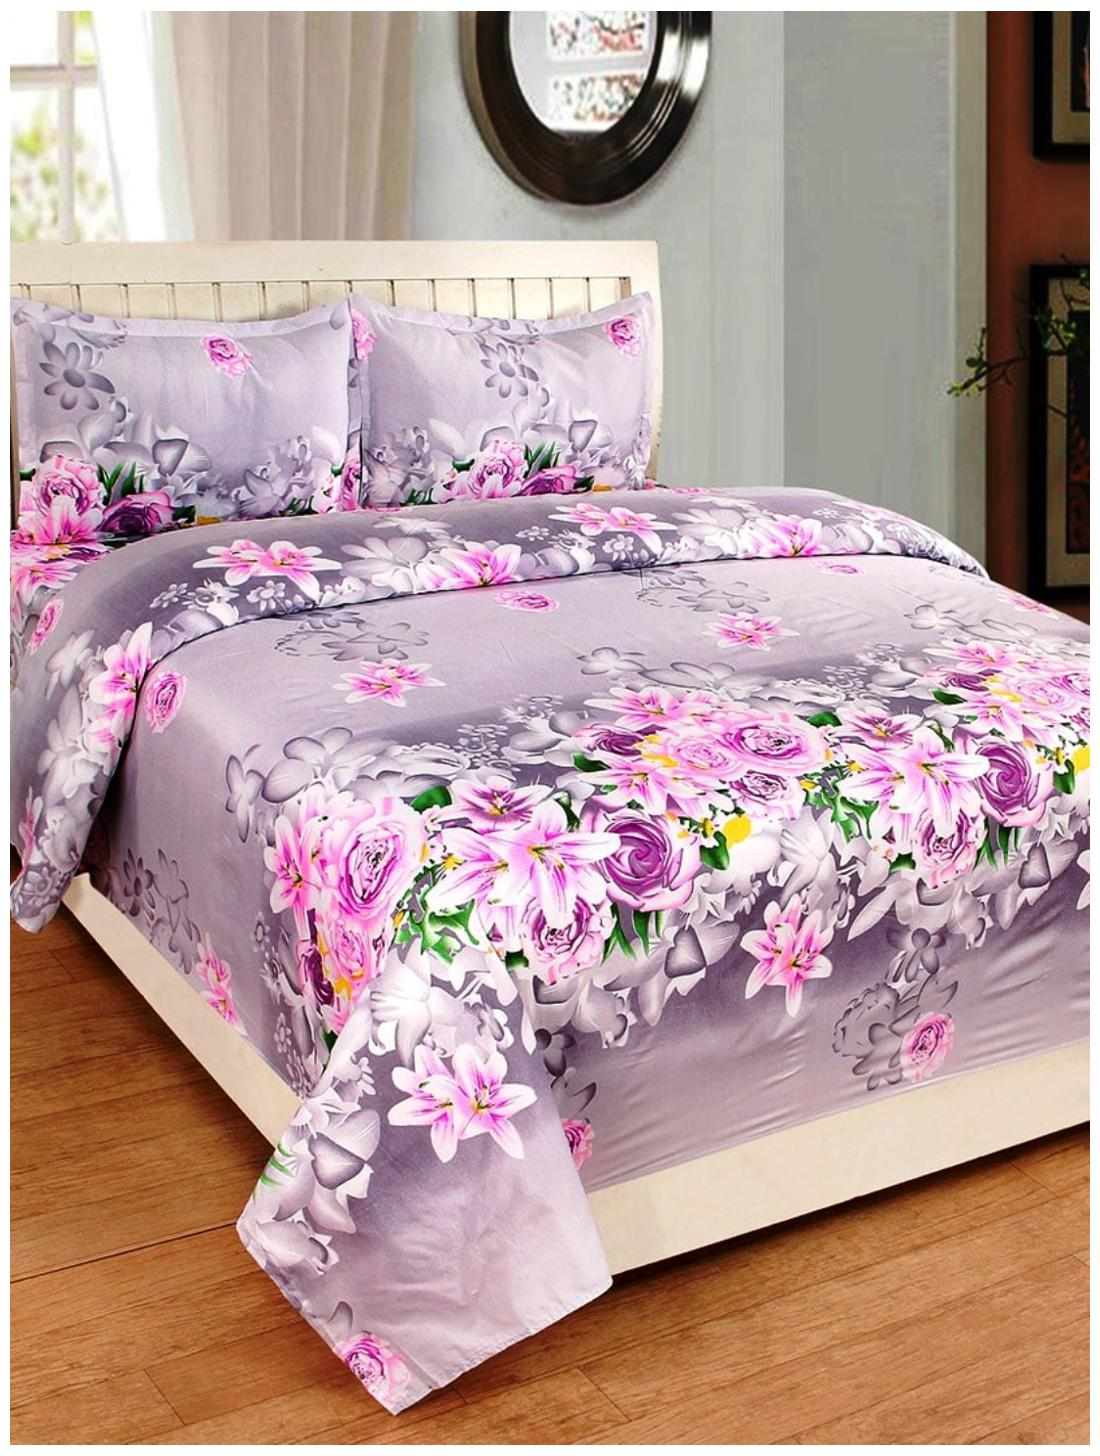 Homefab India 140 TC 3D Printed PolyCotton Double Bed Sheet with 2...